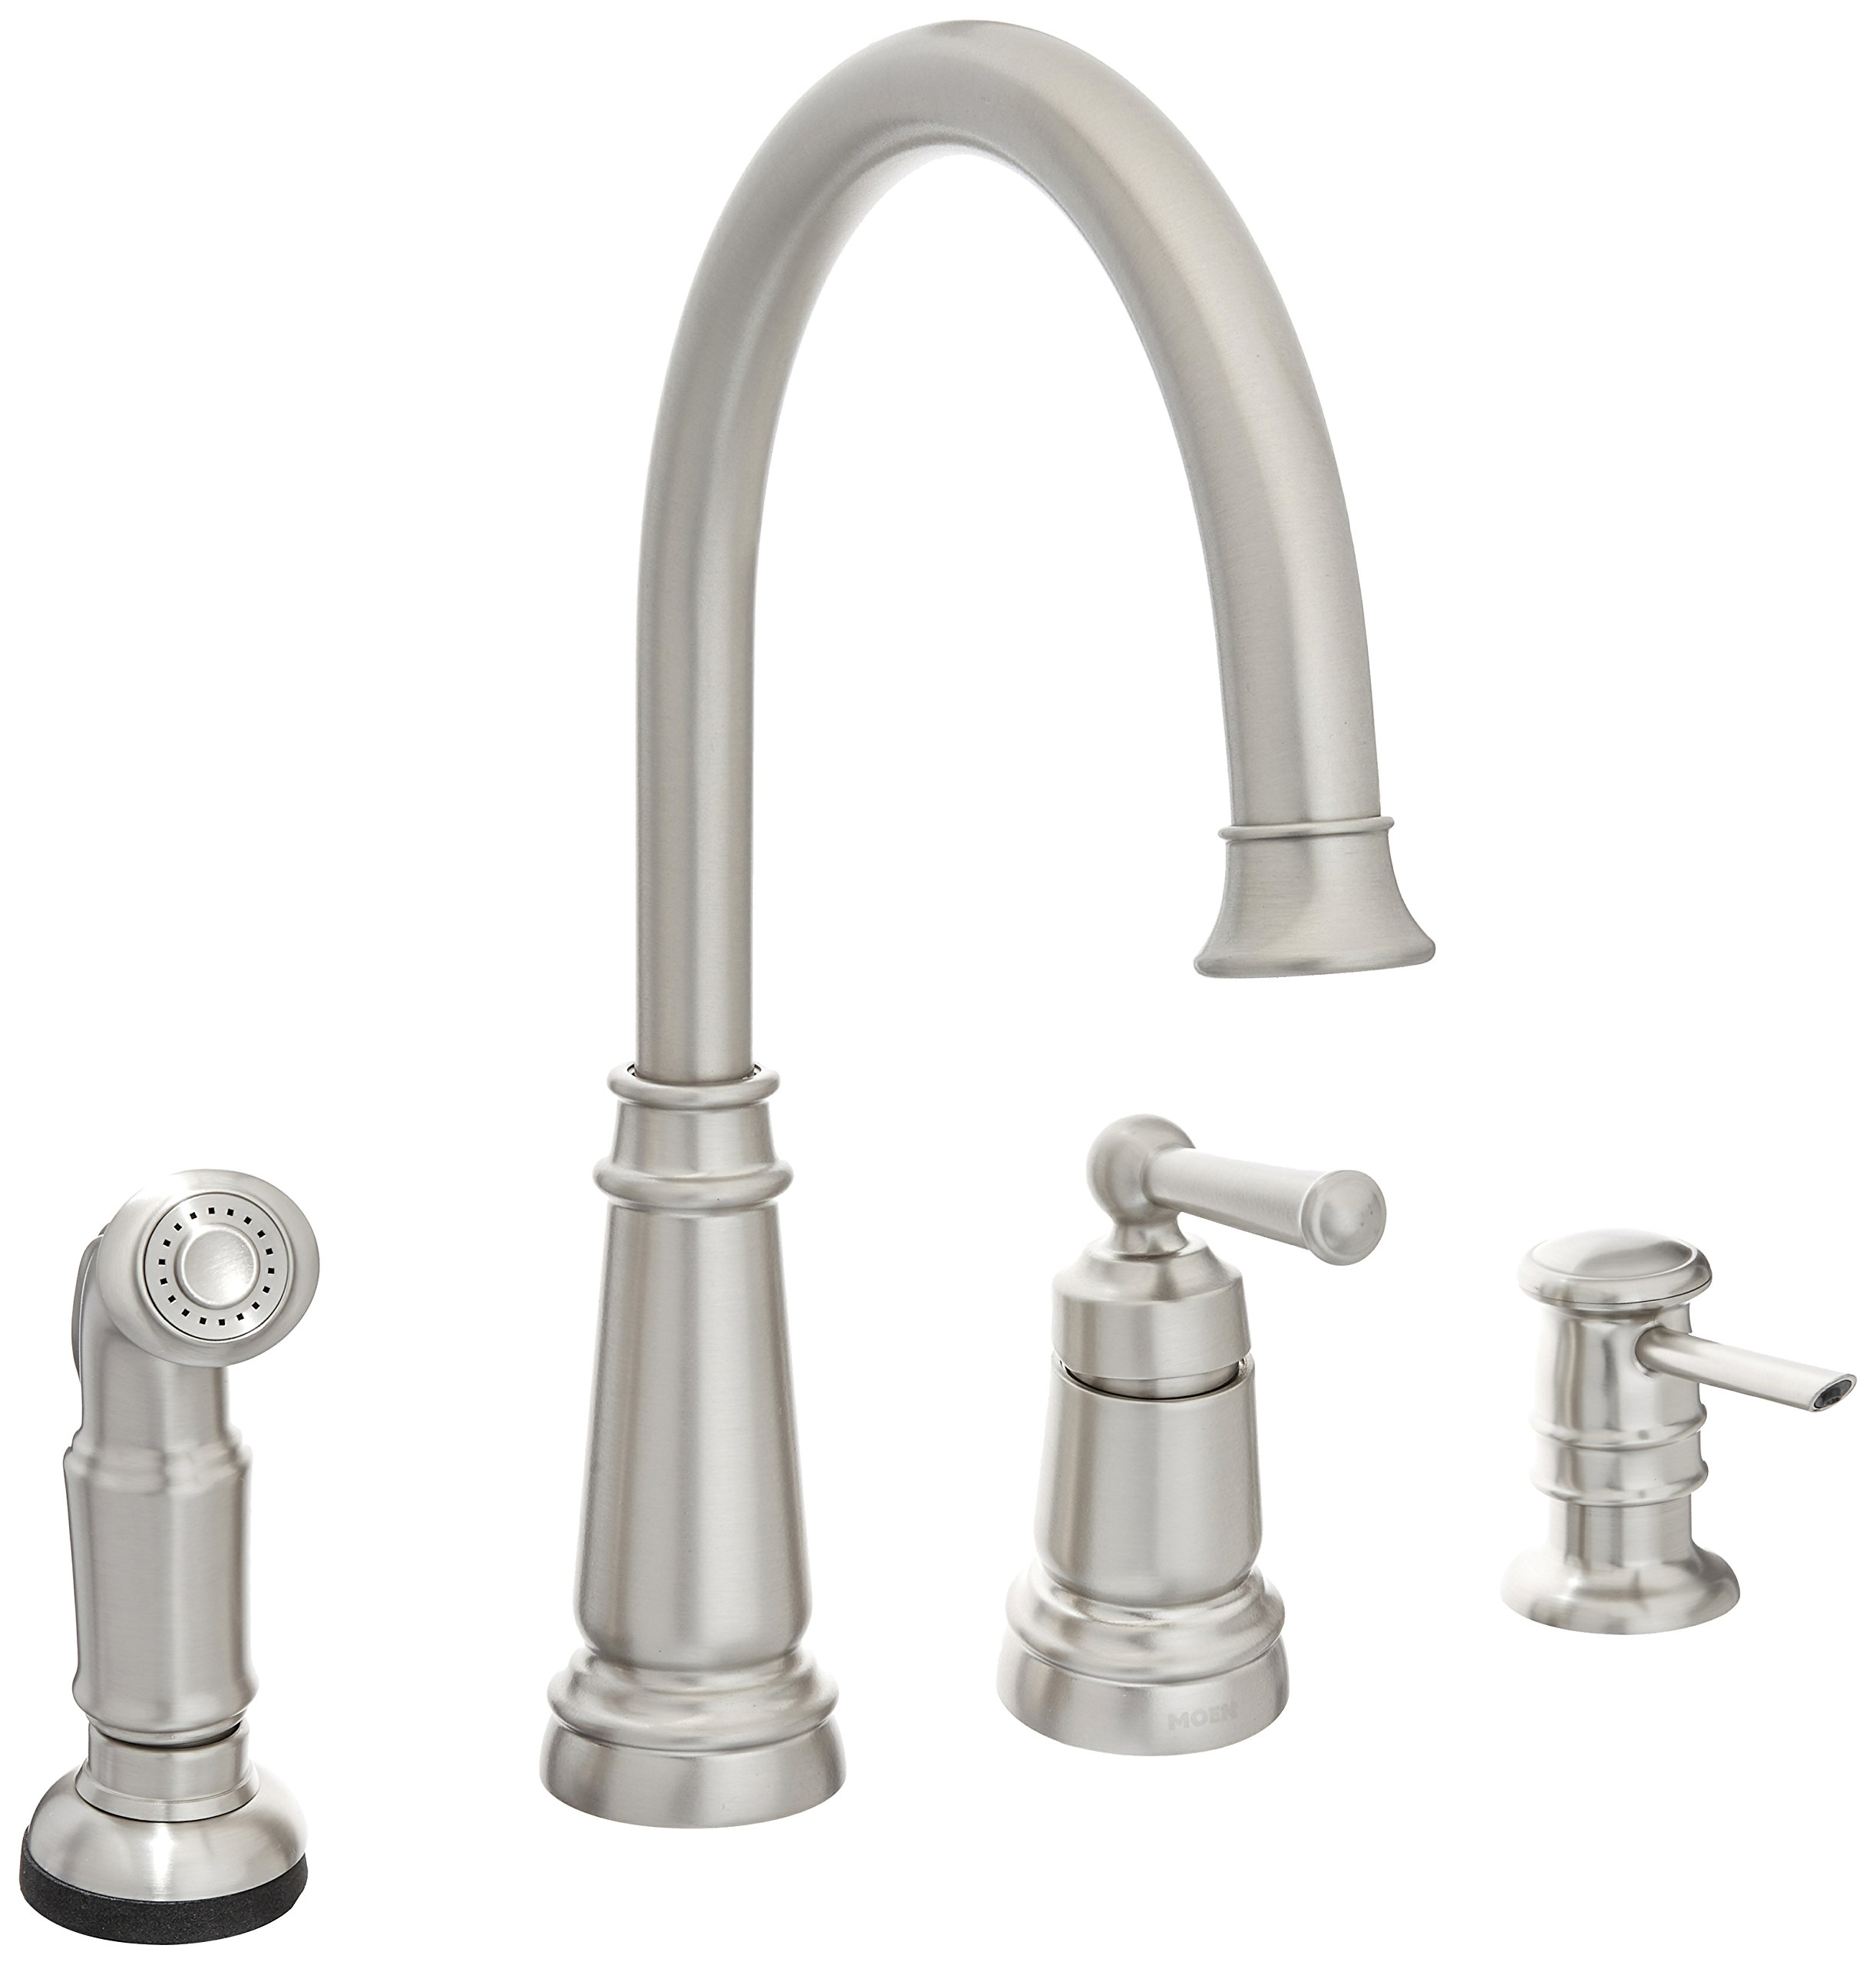 Four Hole Kitchen Faucets